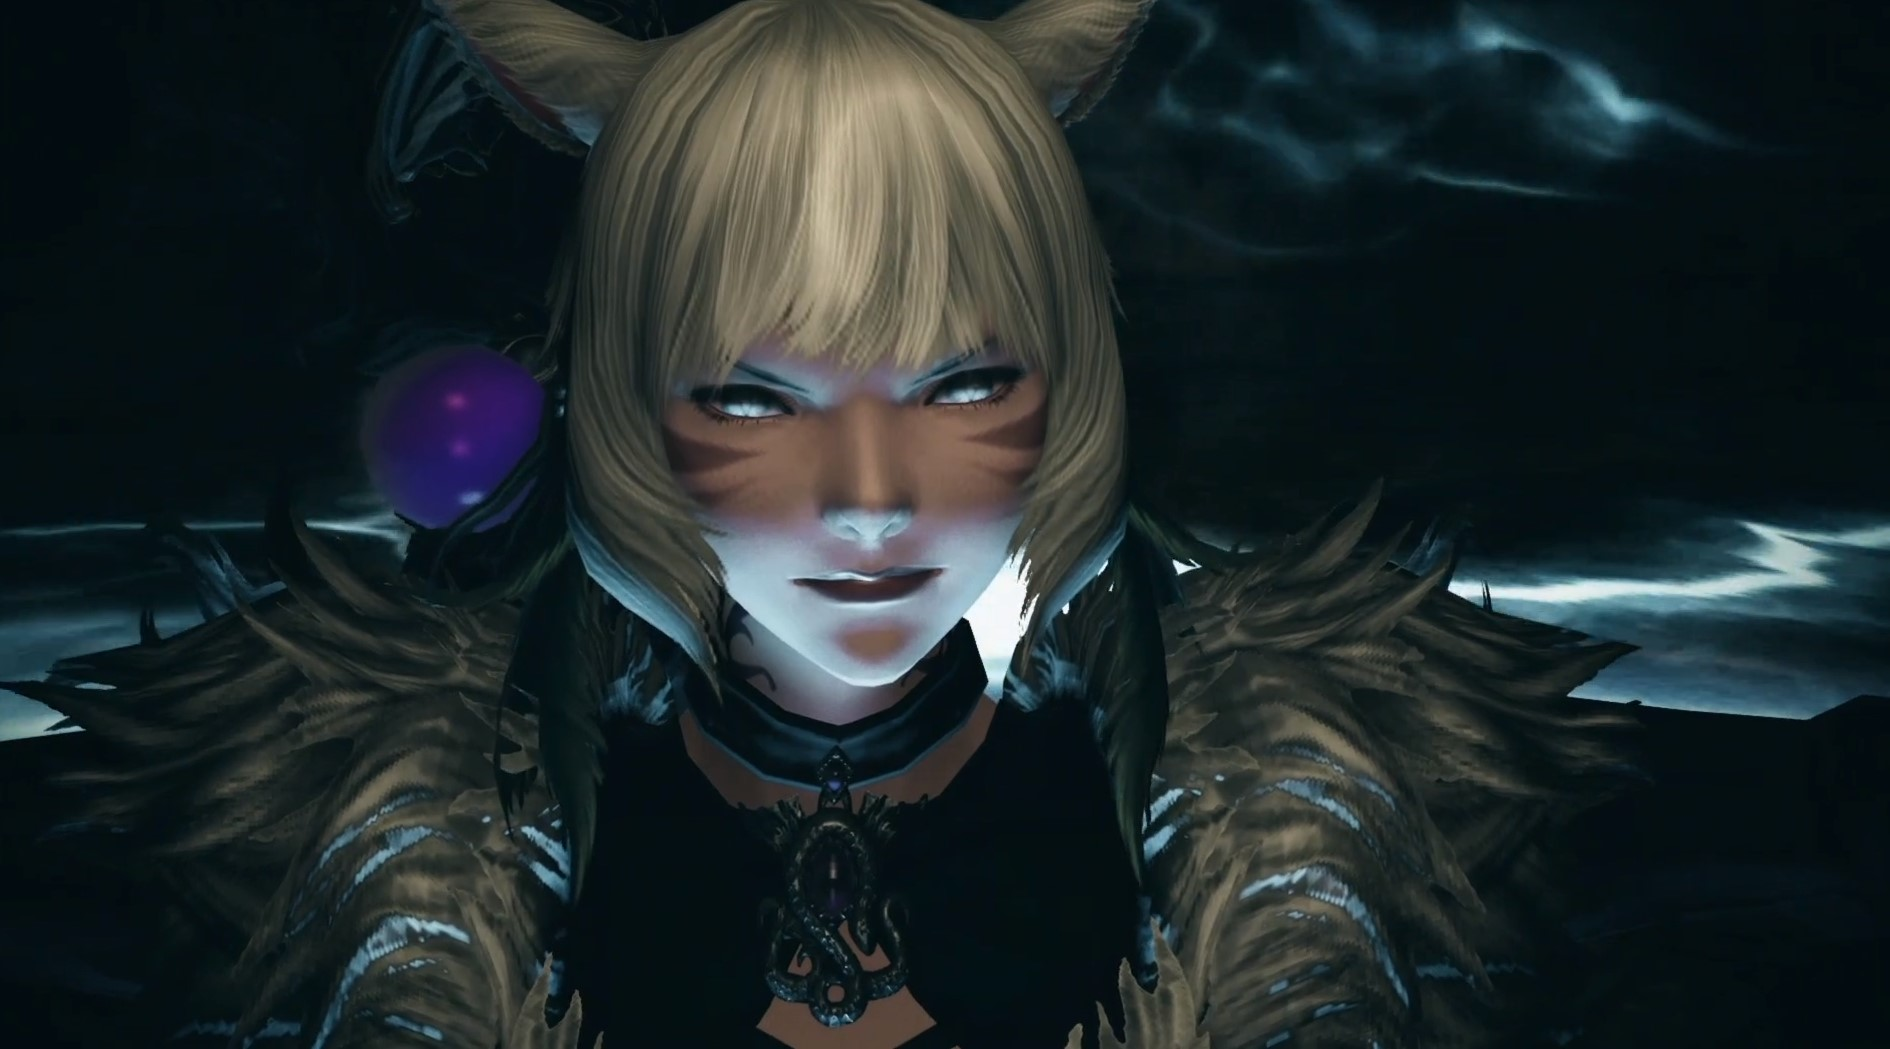 shadowbringers Final Fantasy XIV FF14